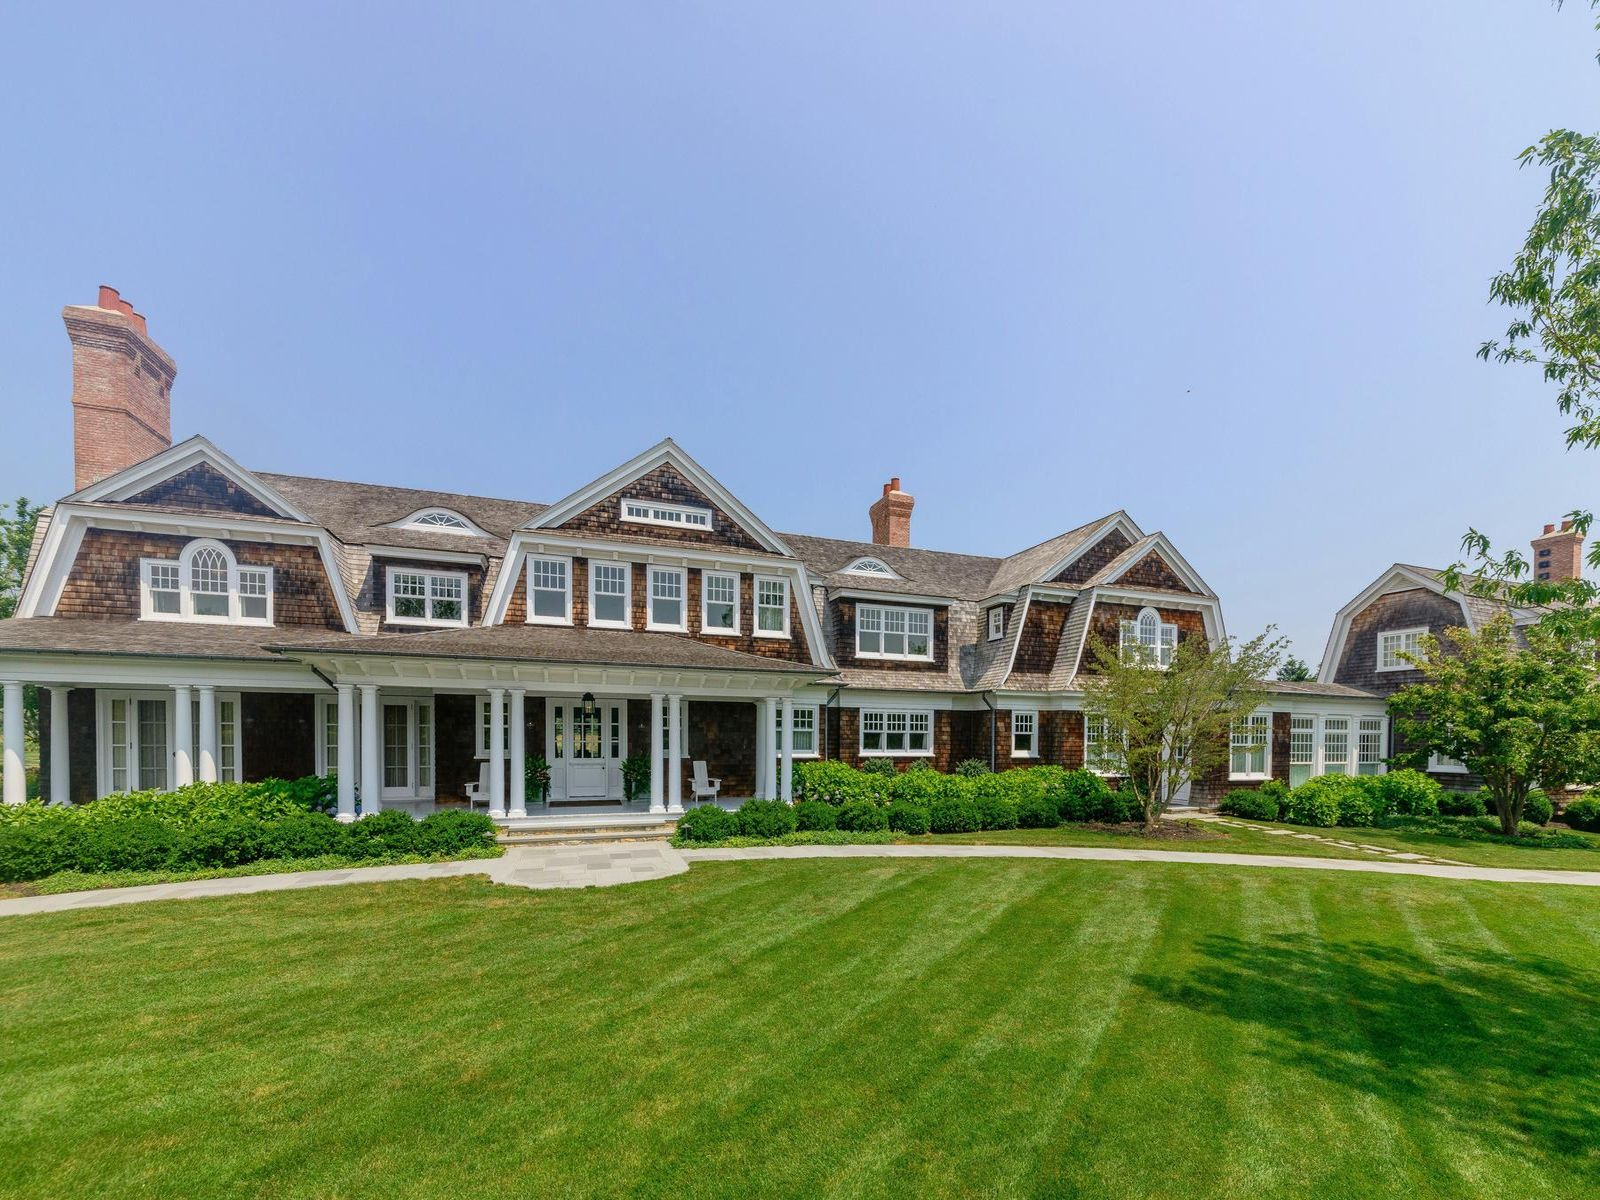 Further Lane Farm, East Hampton NY Single Family Home - Hamptons Real Estate